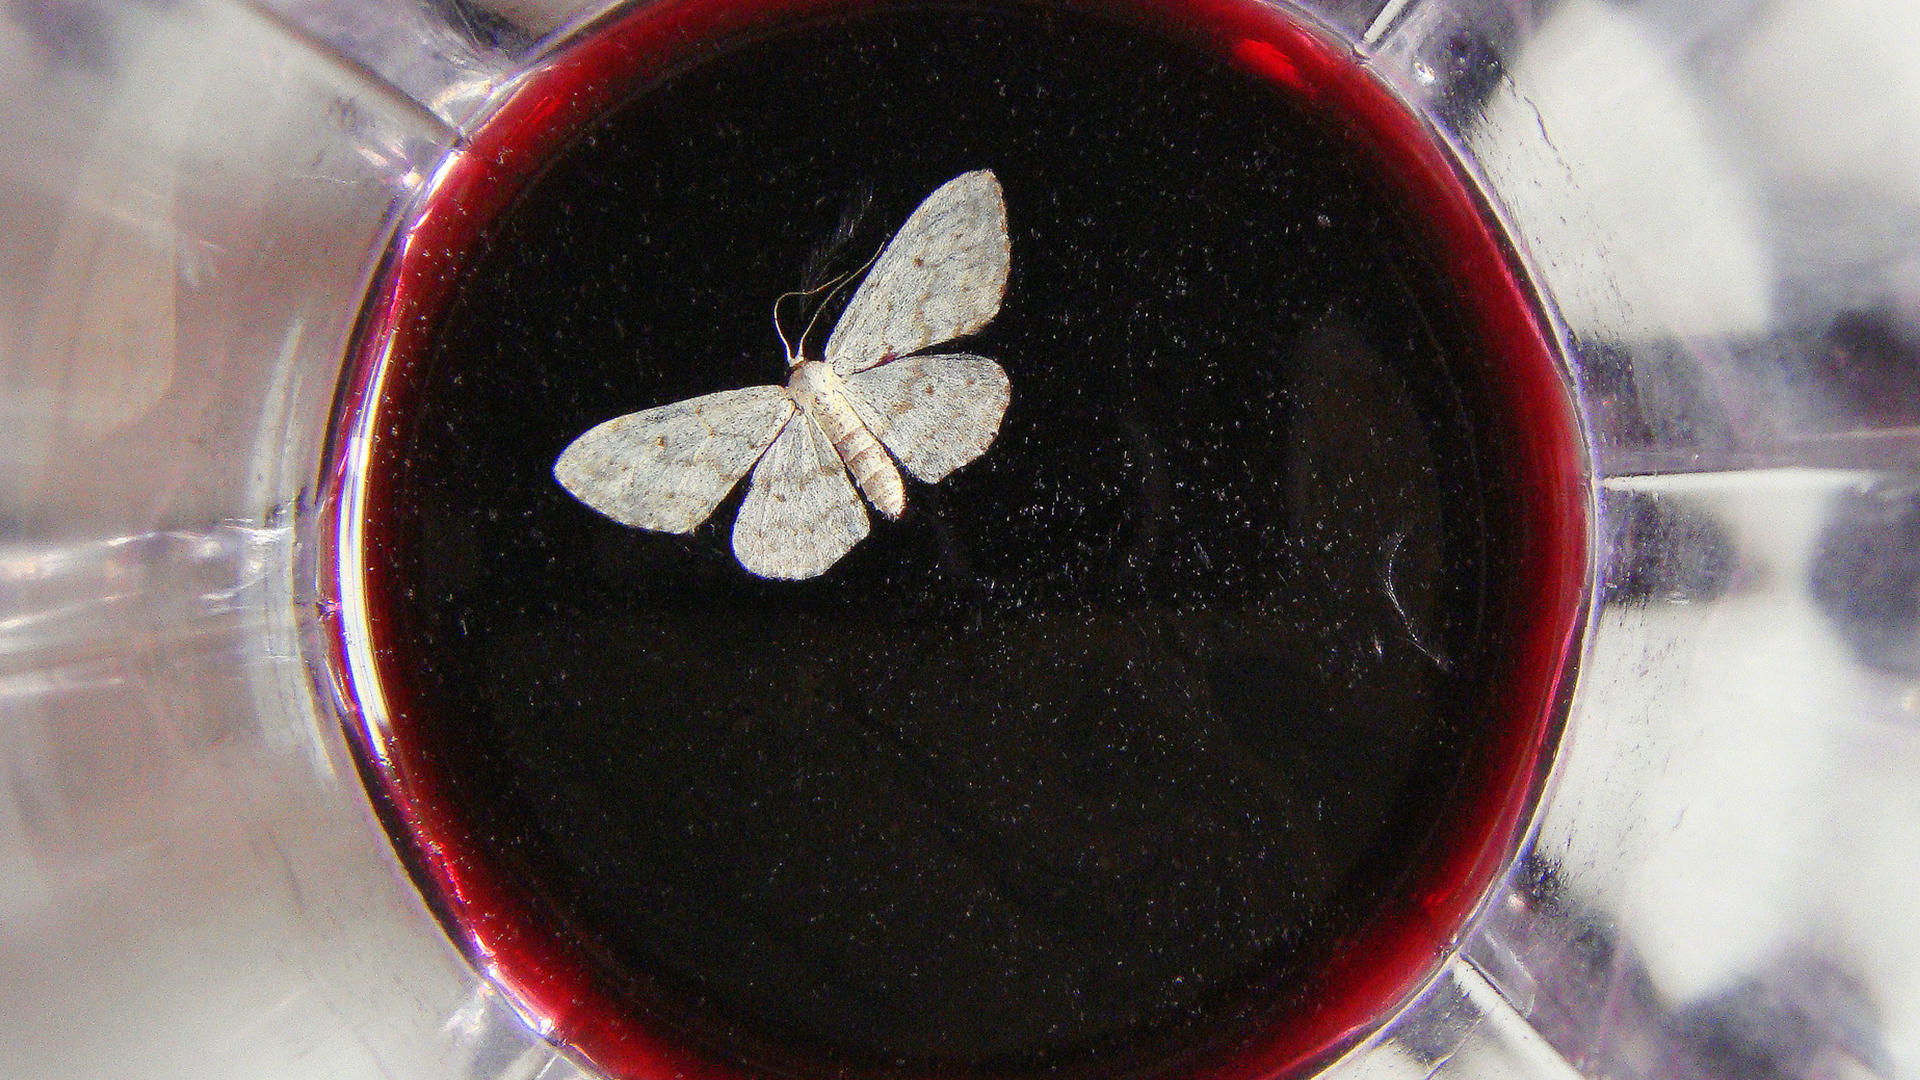 Moth in wine hero